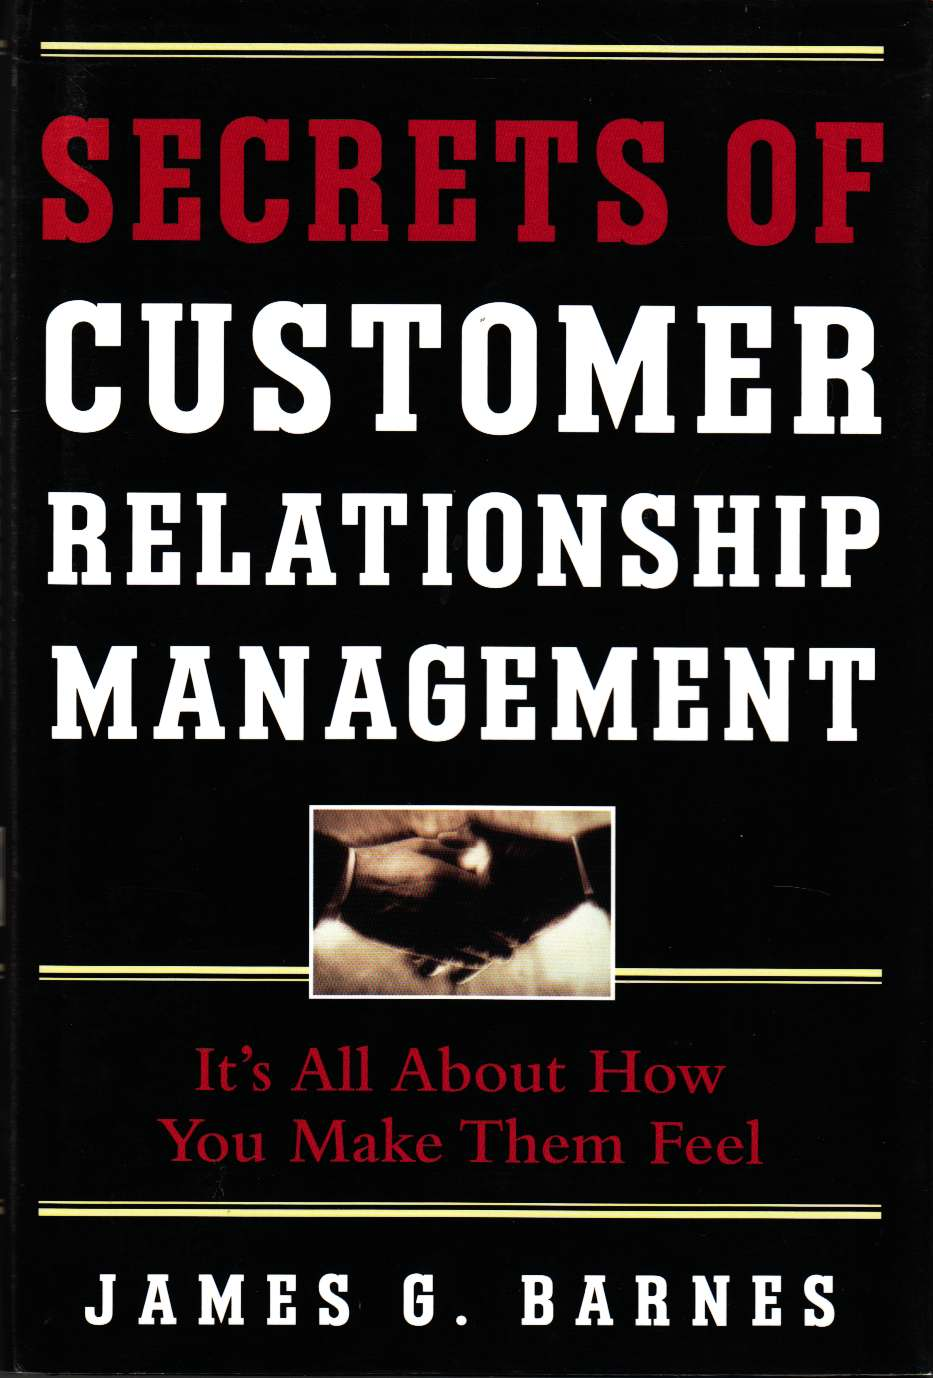 Image for Secrets of Customer Relationship Management It's all about How You Make Them Feel